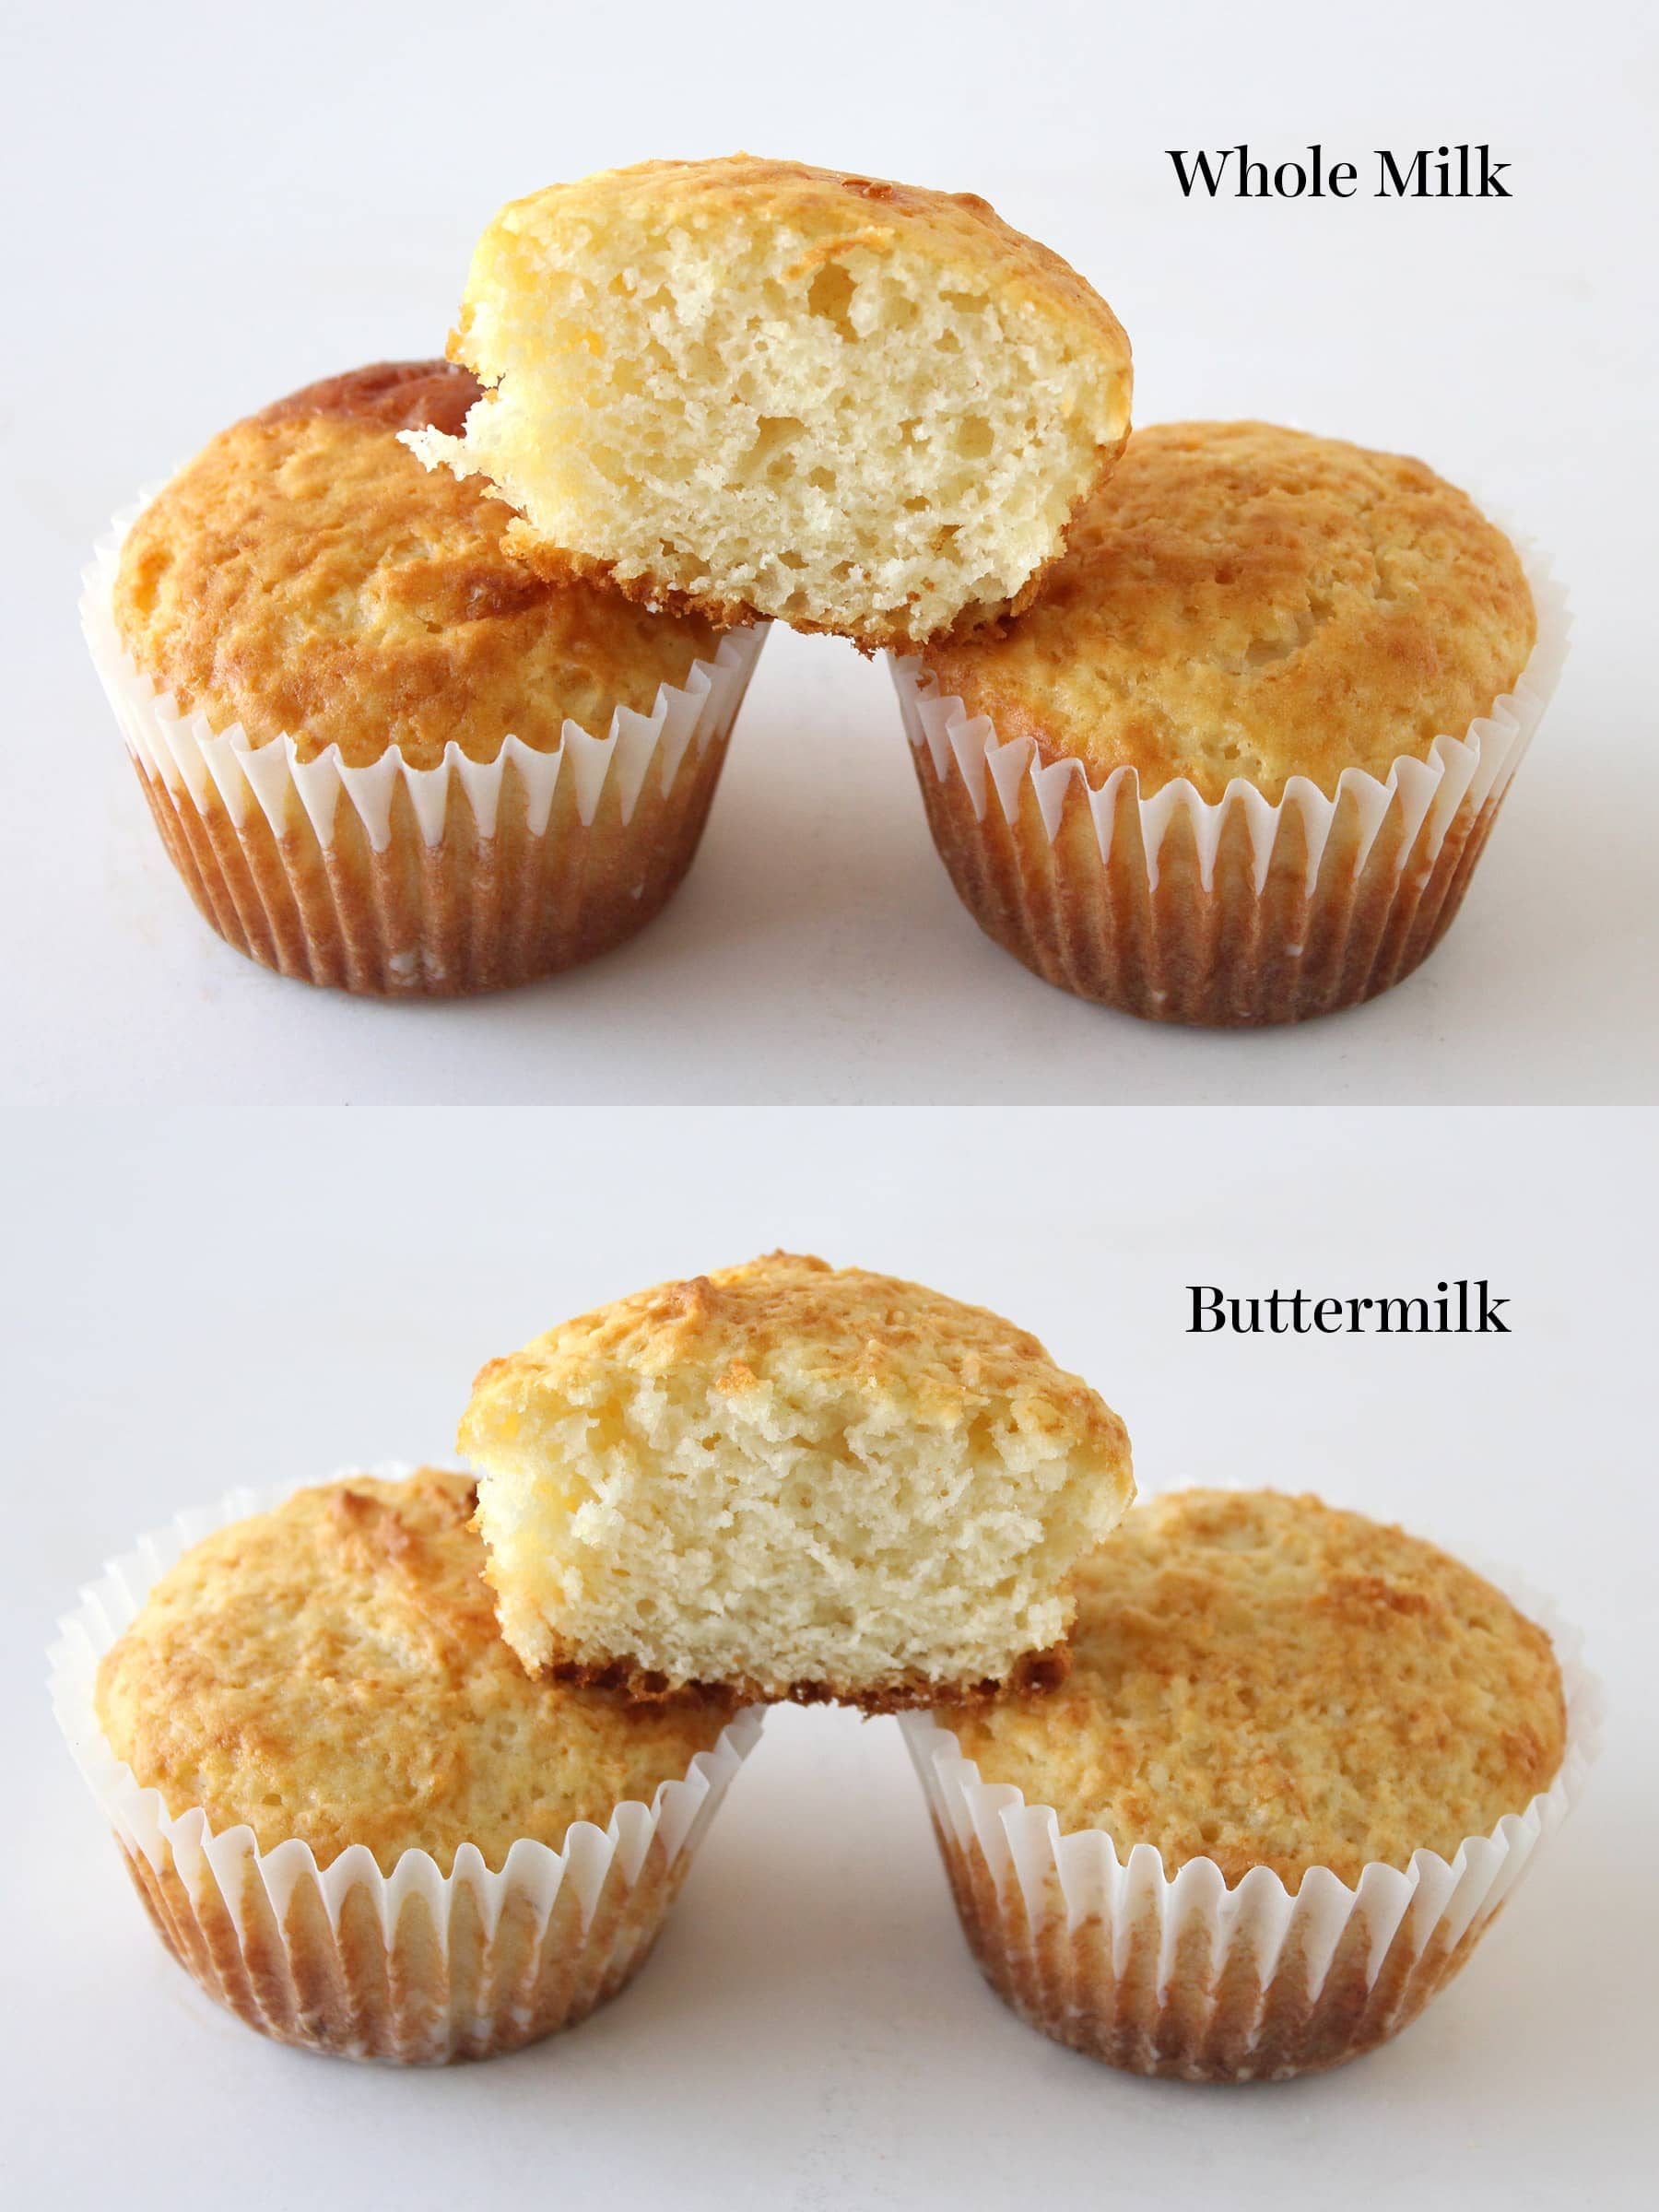 Comparing muffins made with whole milk vs. buttermilk